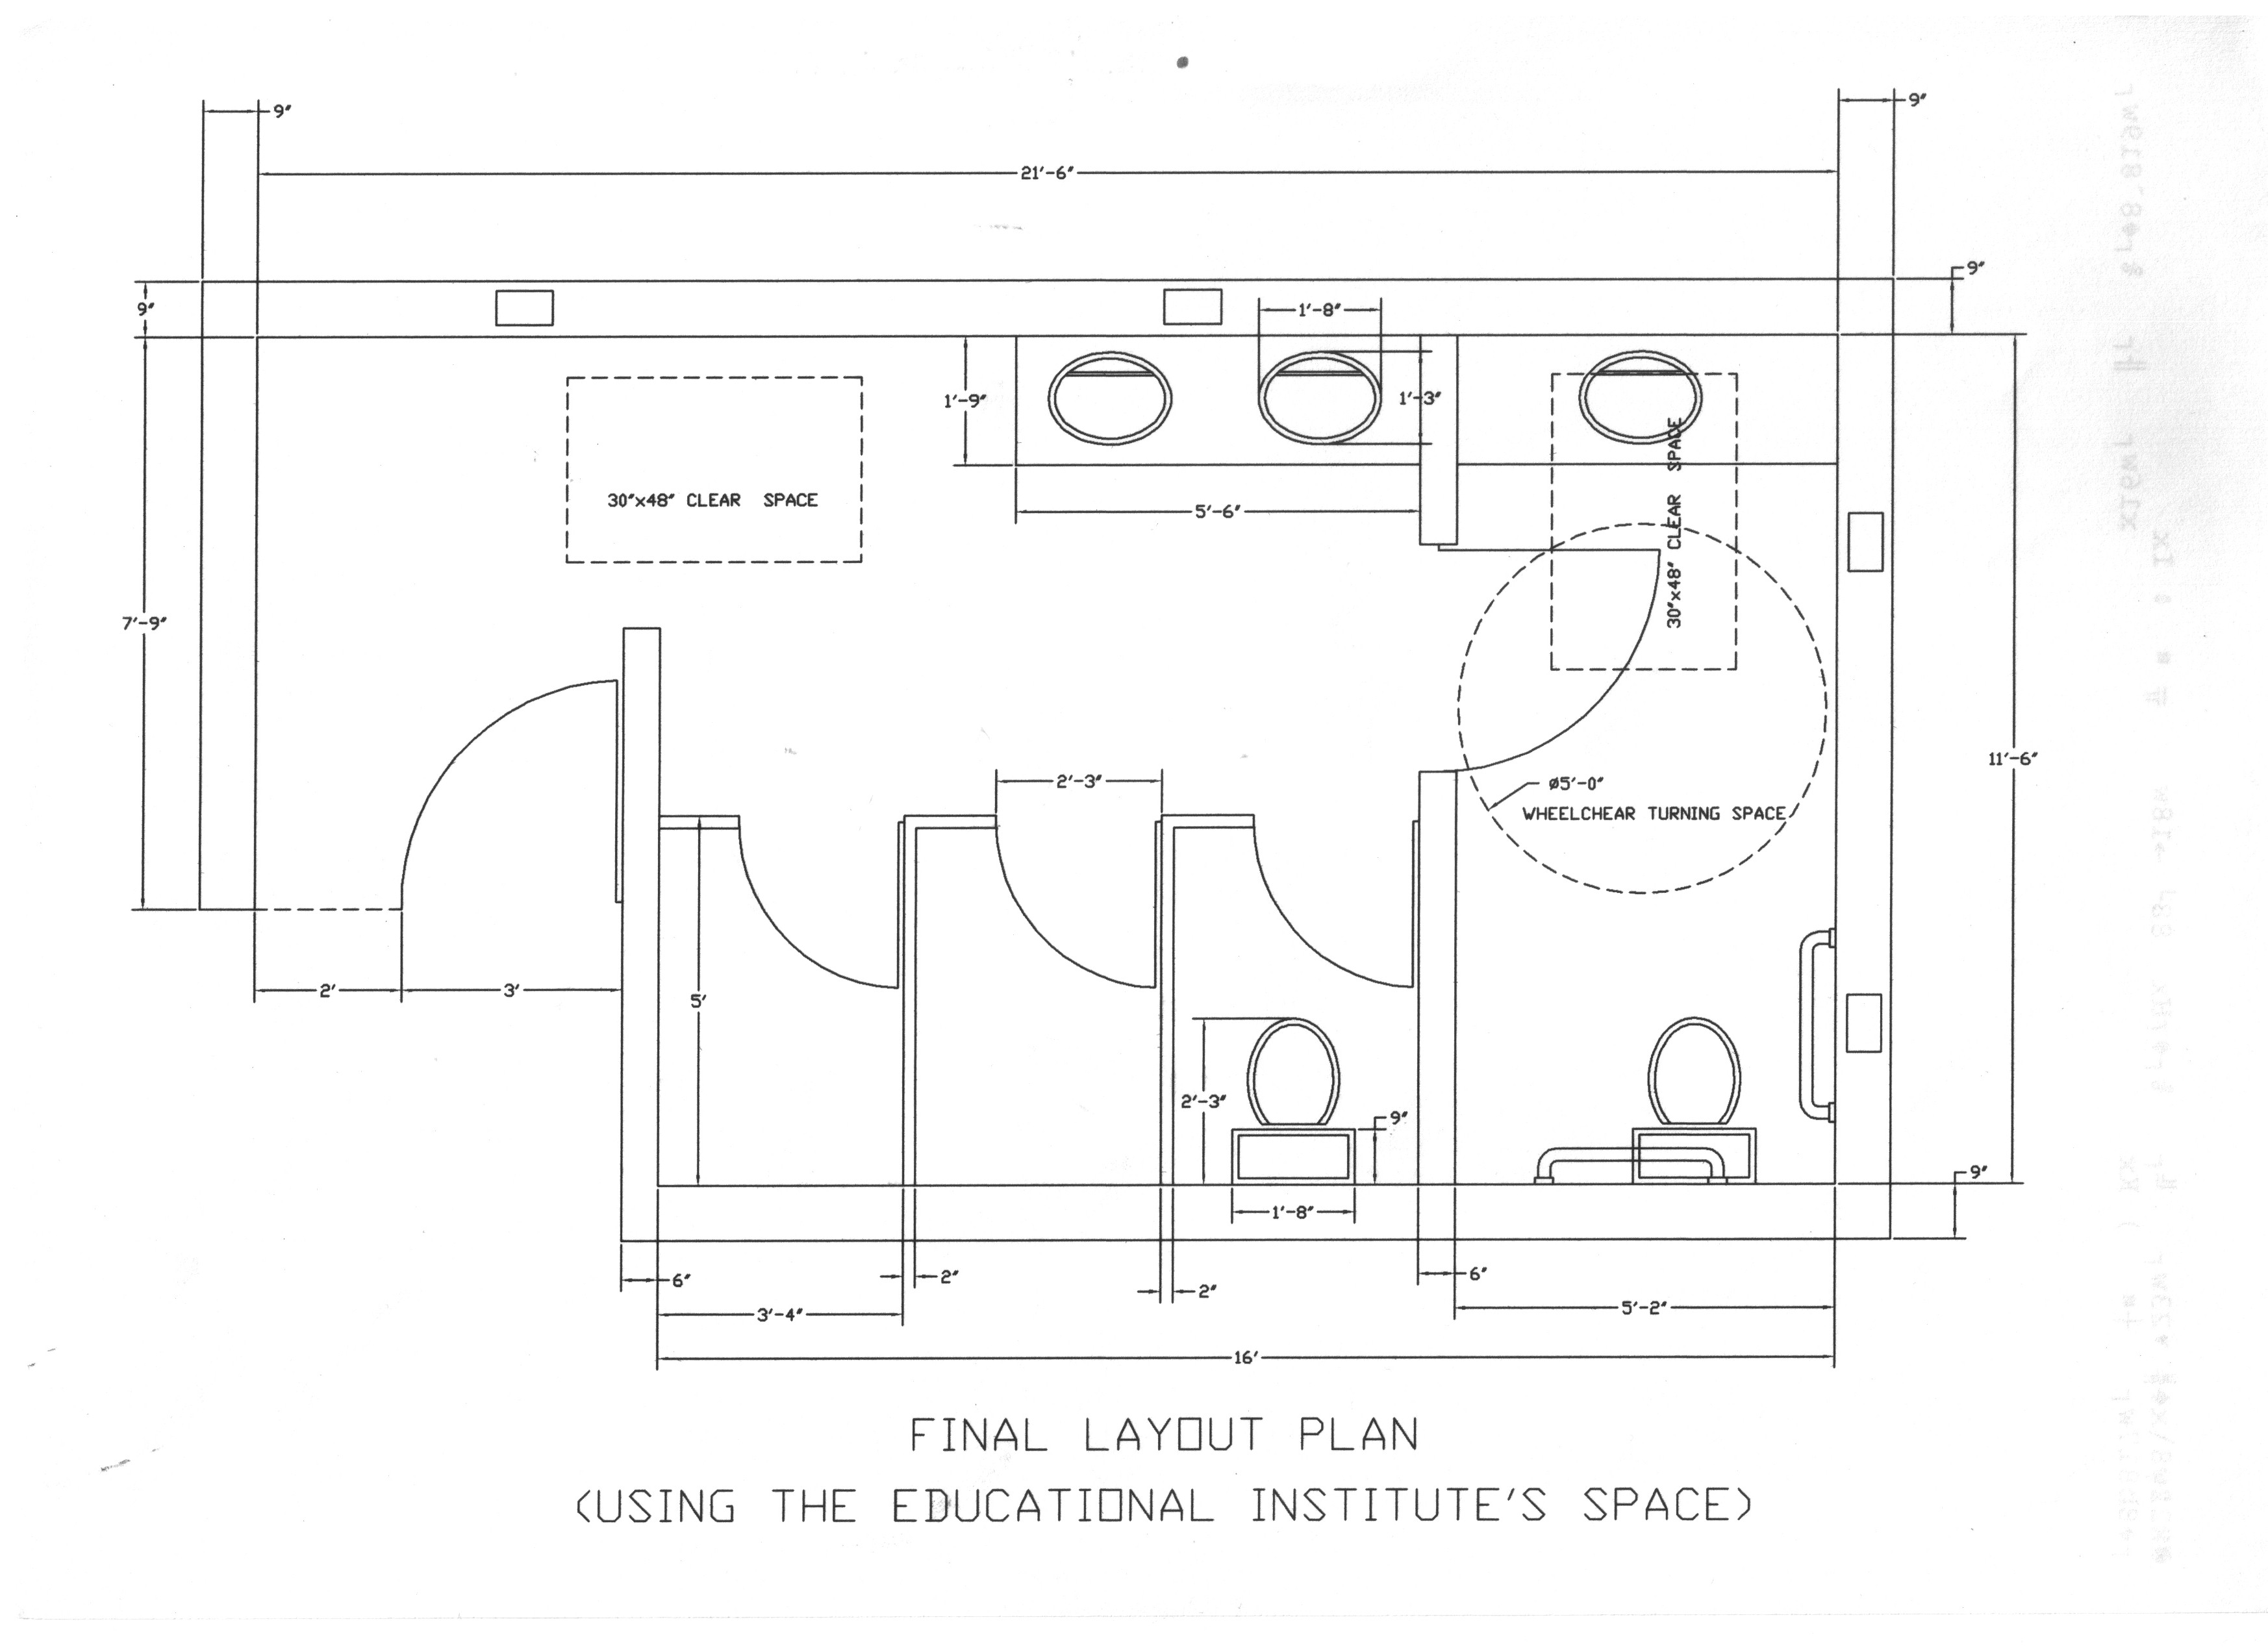 shower stall diagram three phase electrical wiring ergonomics by alisha arora at coroflot